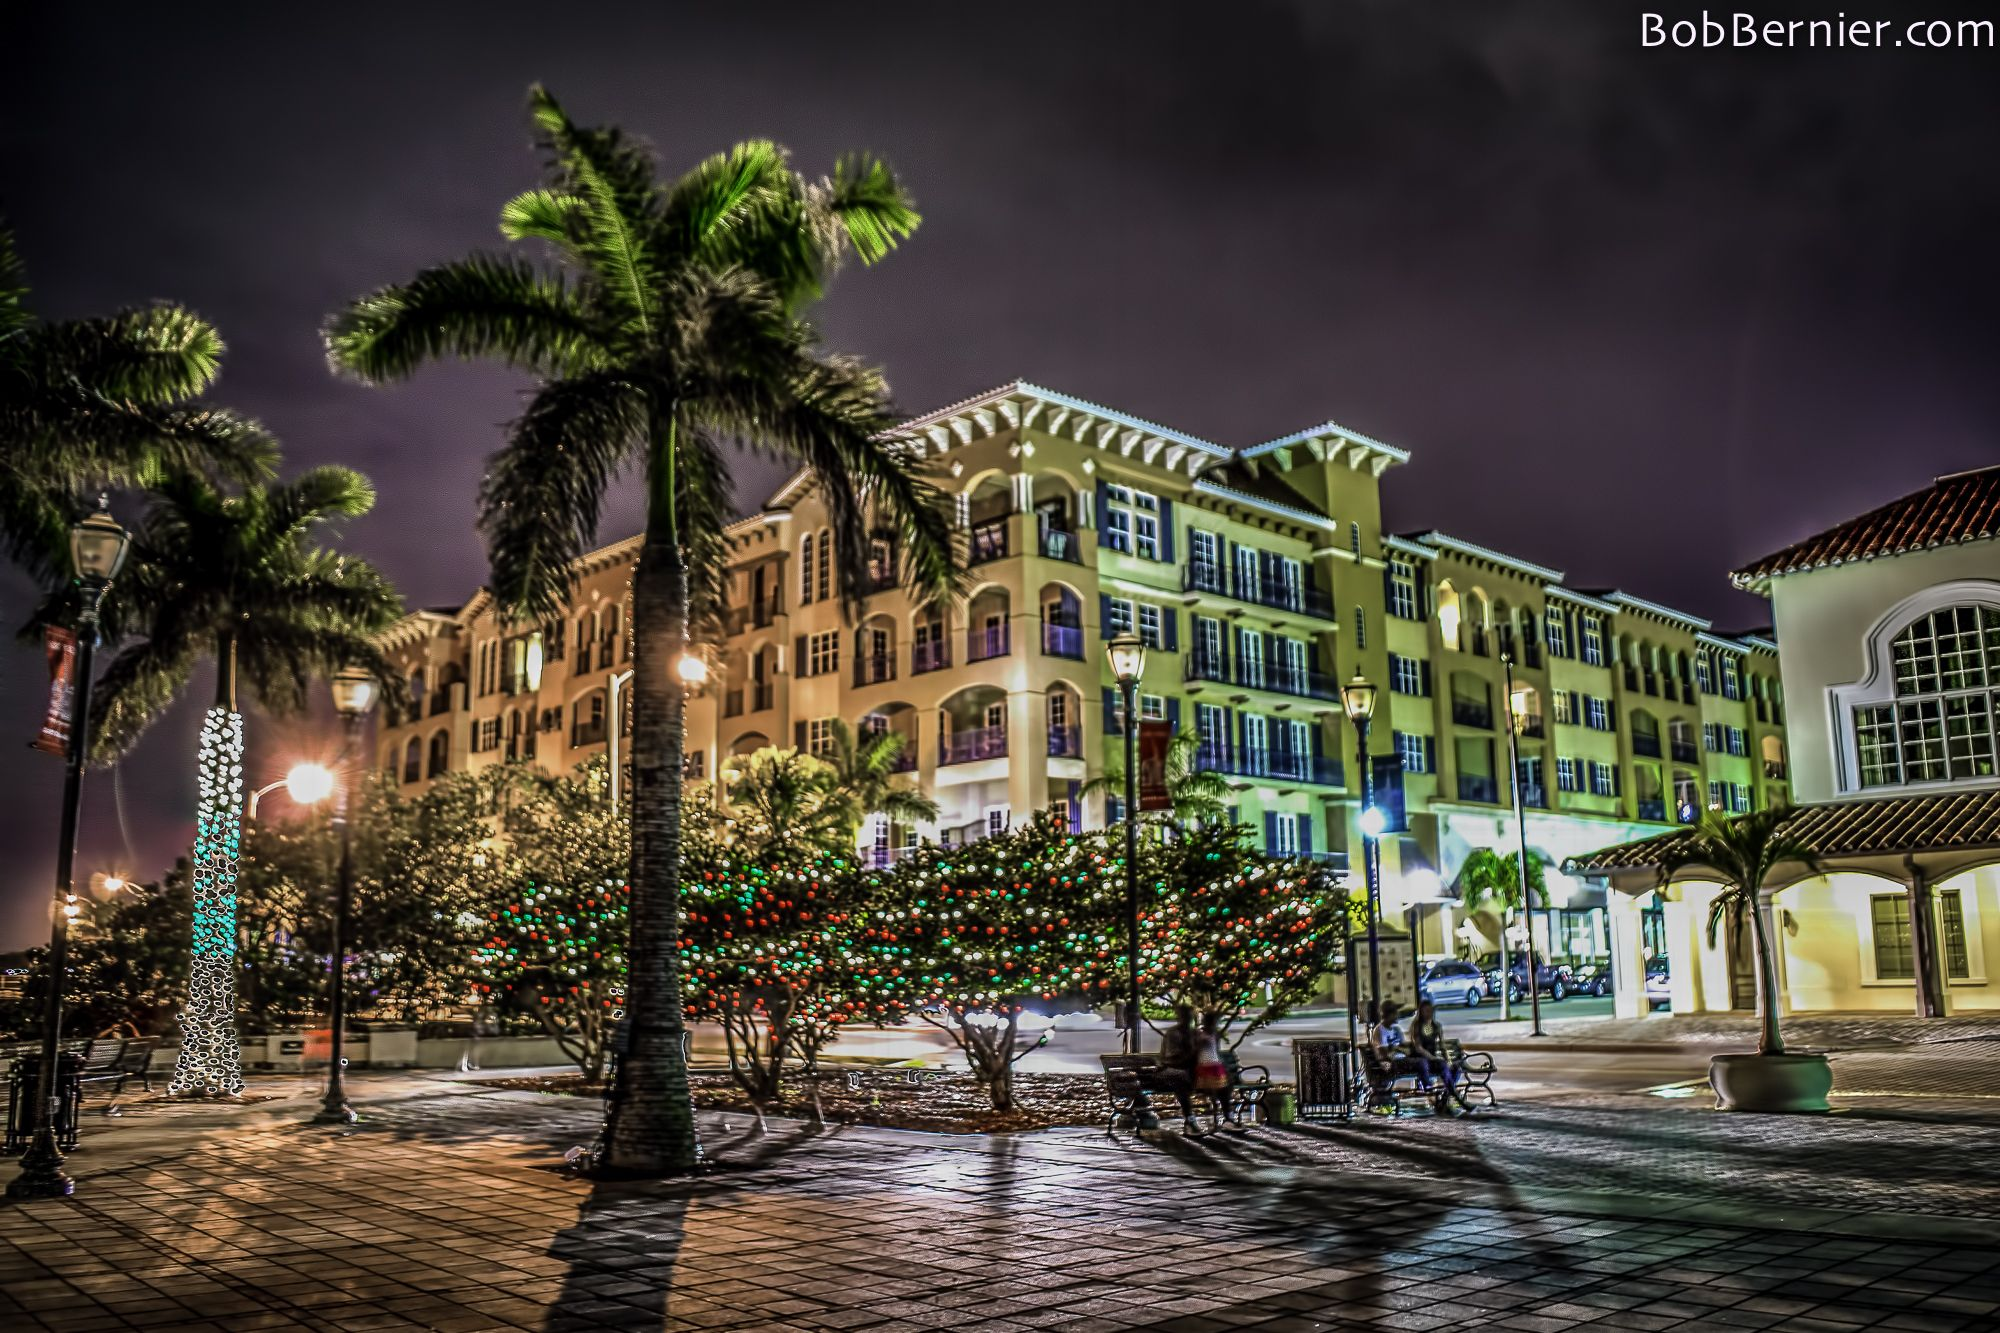 Downtown Fort Pierce Fl Bob Bernier Photography House